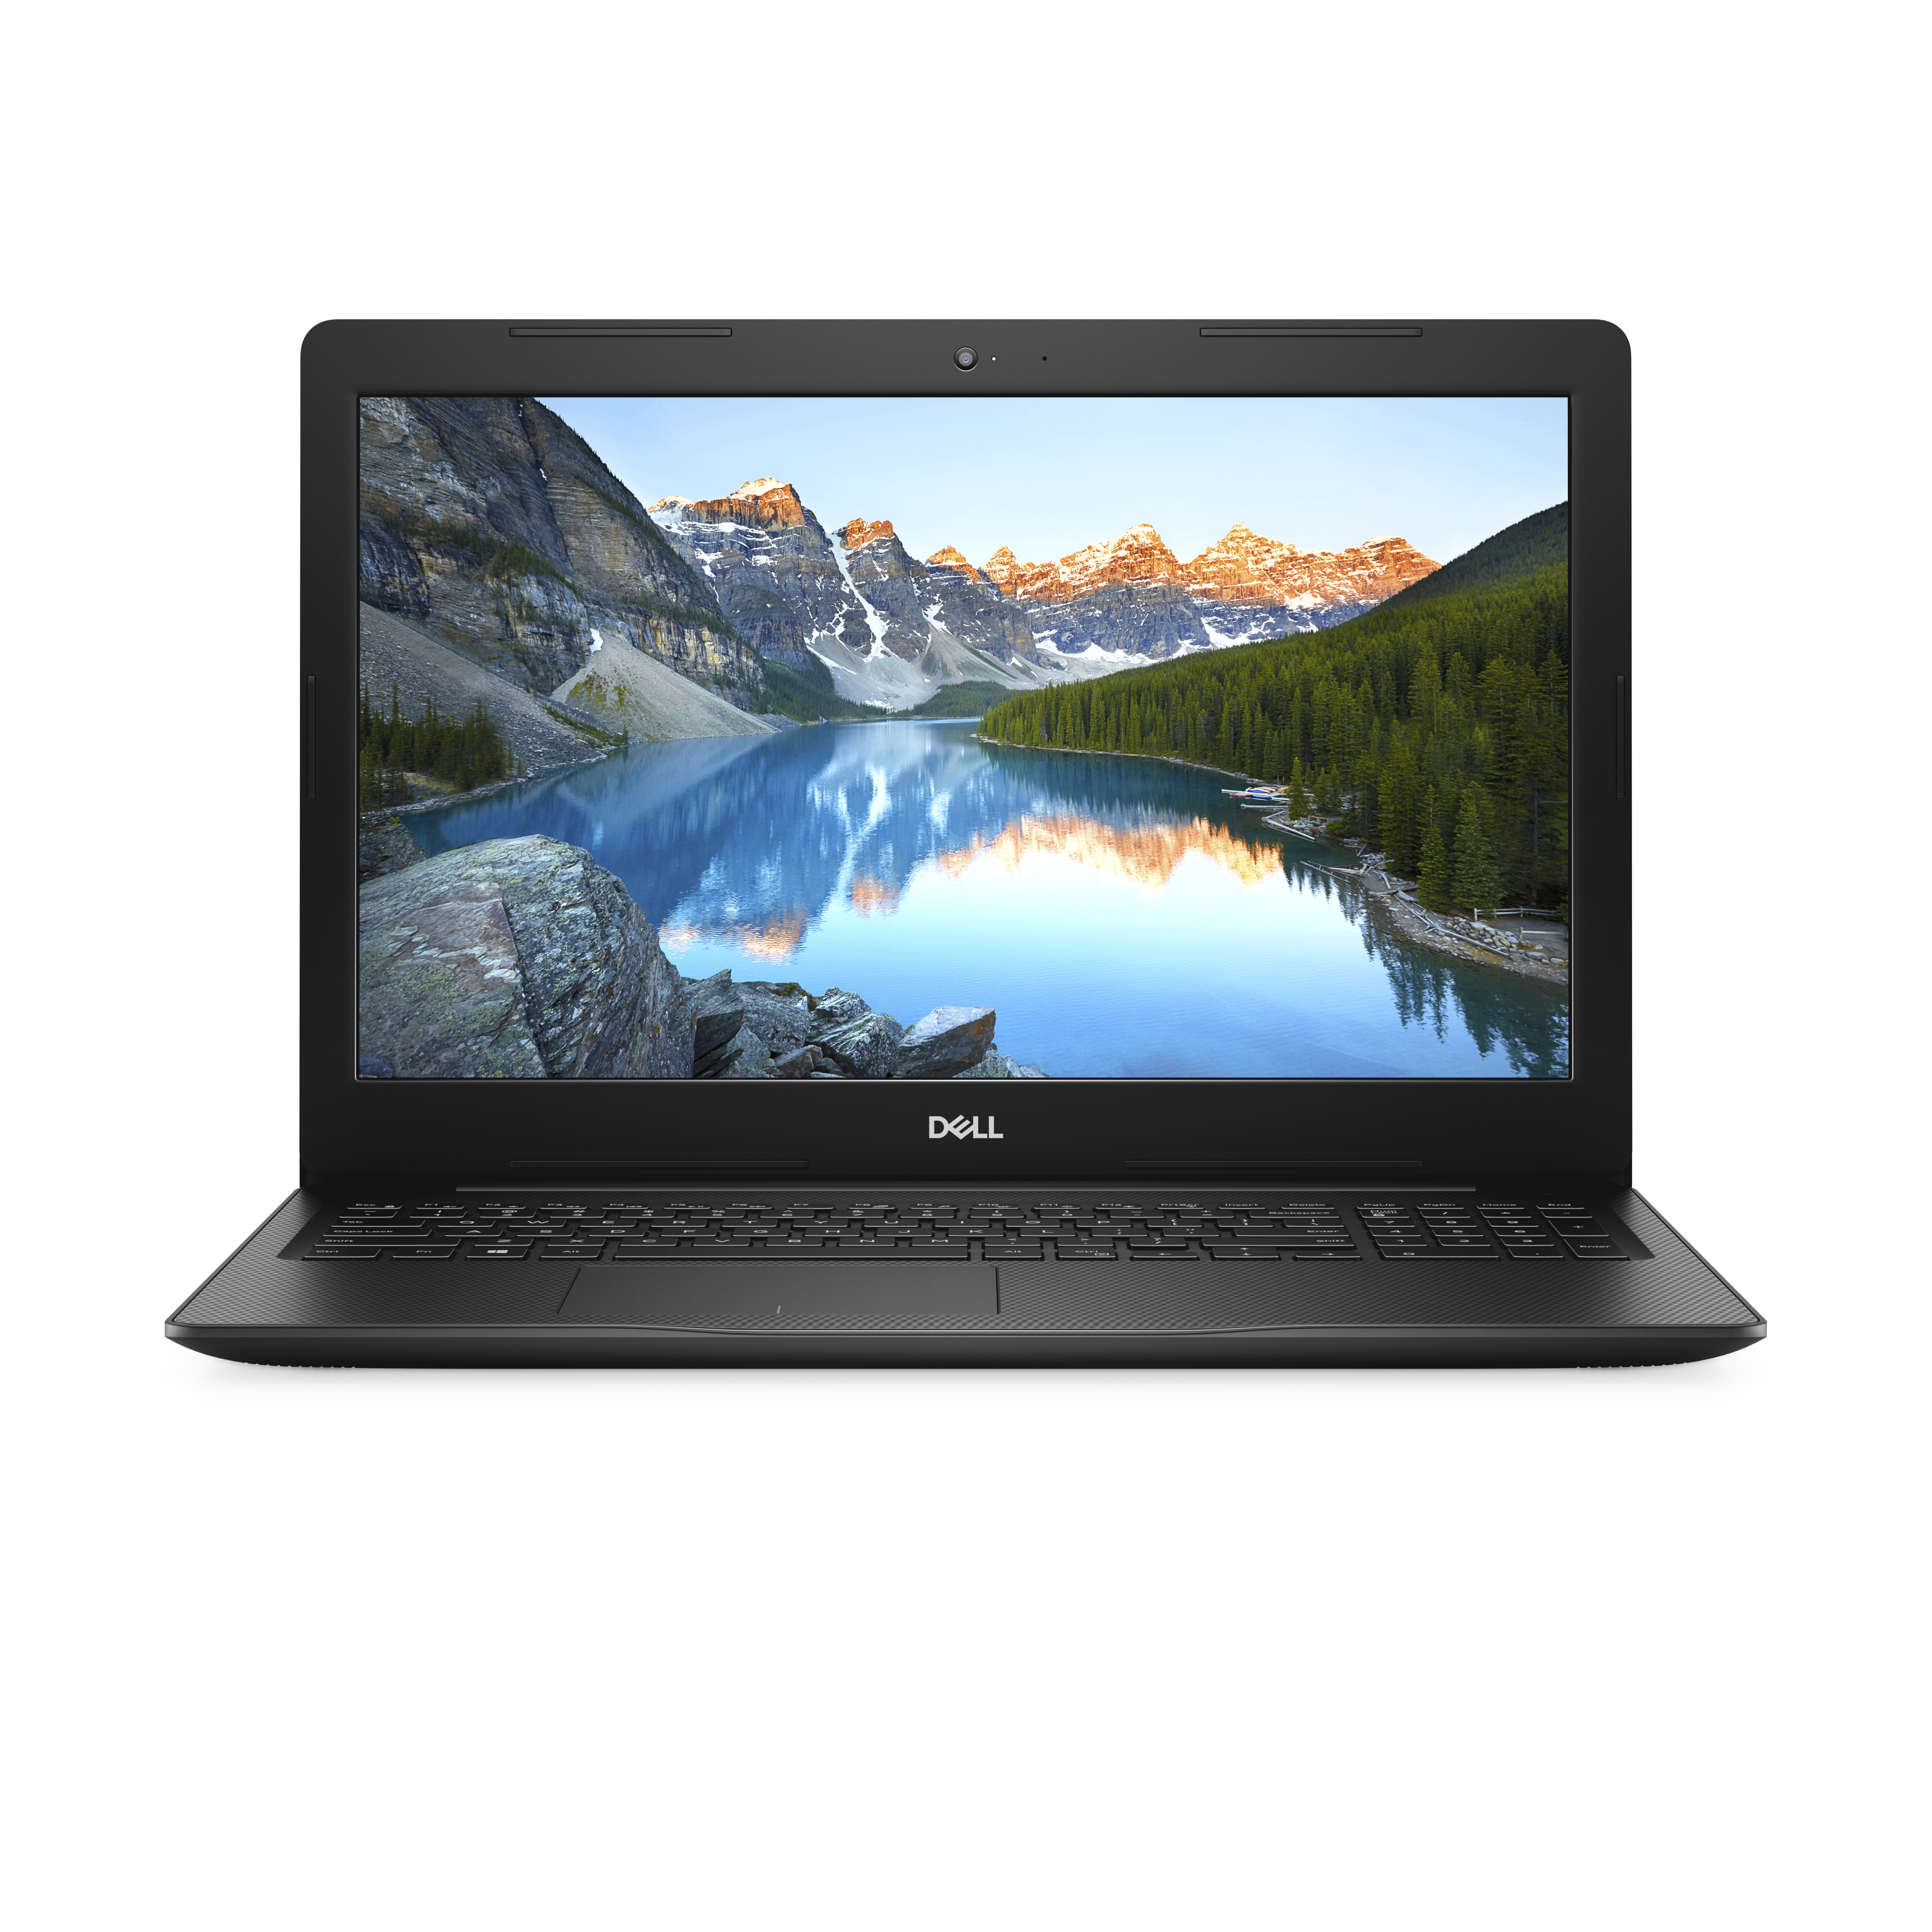 Laptop Dell Inspiron 3580 N3580A i3 8145U DDR4 4GB 1TB 15.6 Win 10 (Silver)